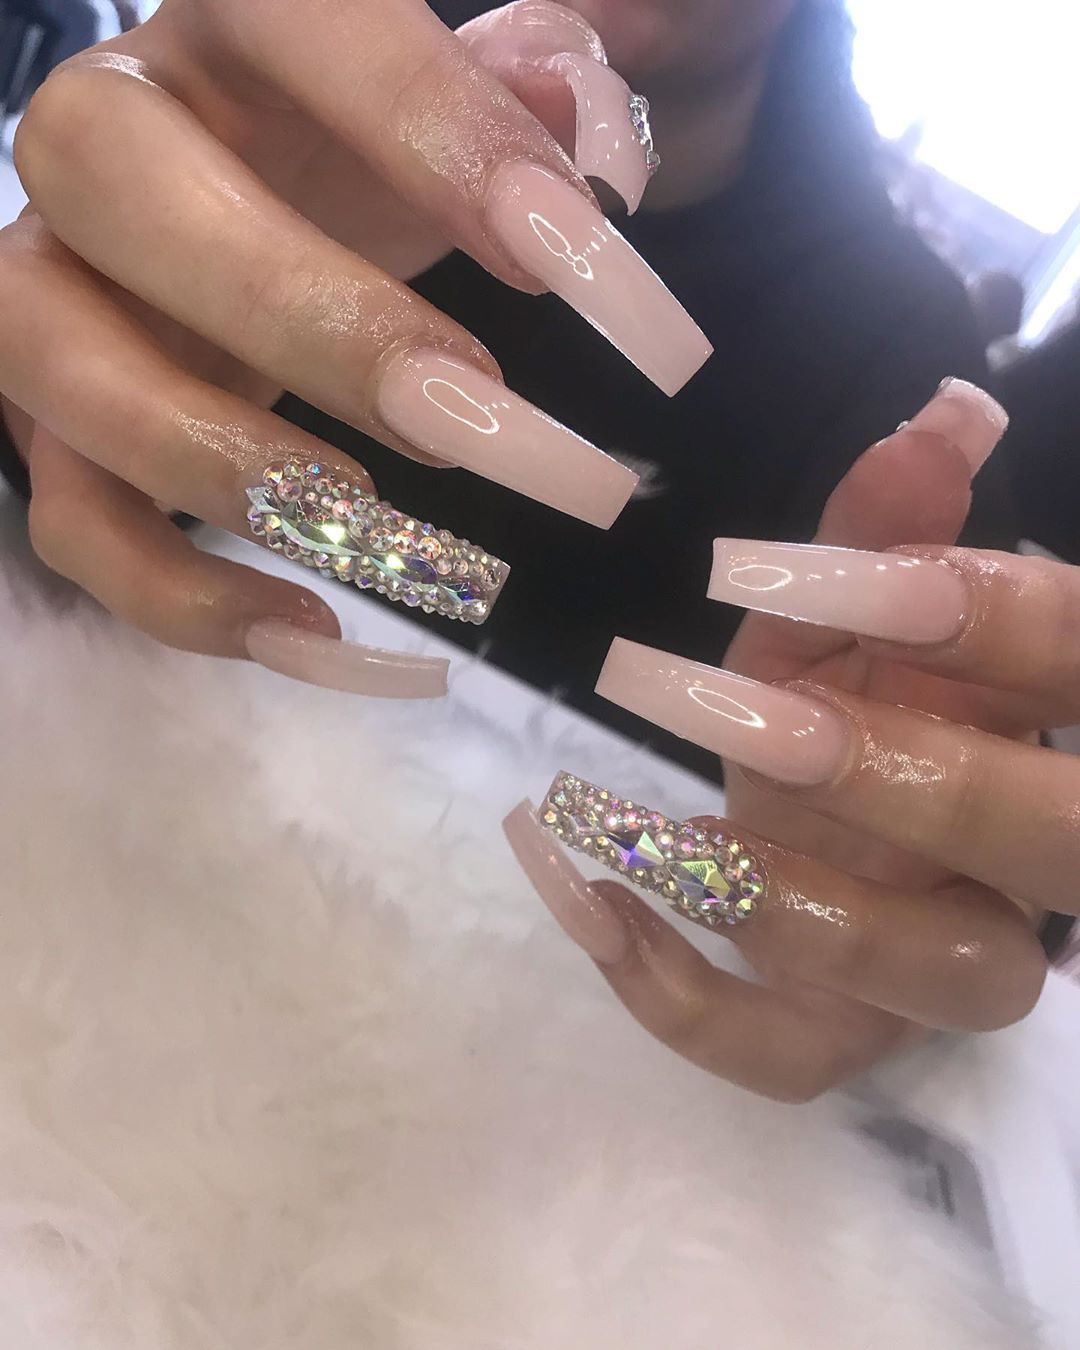 Pin by yammy davis on claws in 2020 (With images) | Nails ...